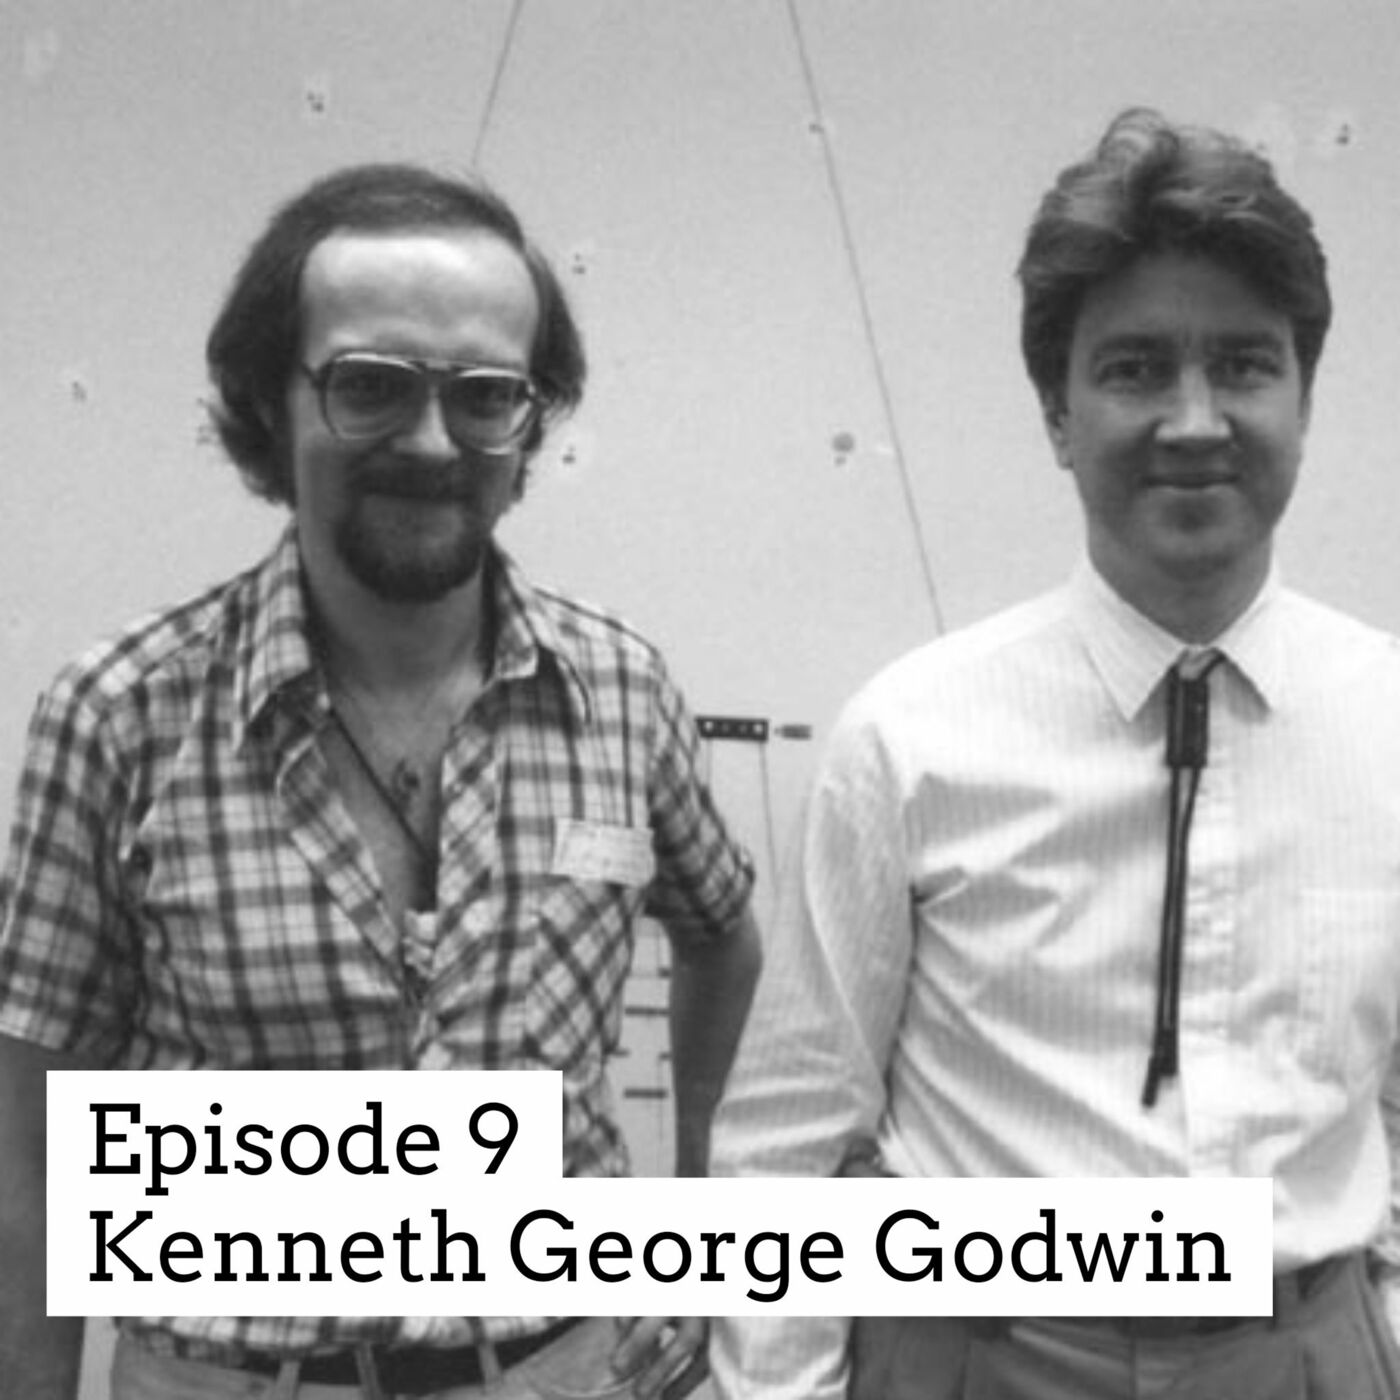 Kenneth George Godwin - DUNE (David Lynch) behind the scenes creator